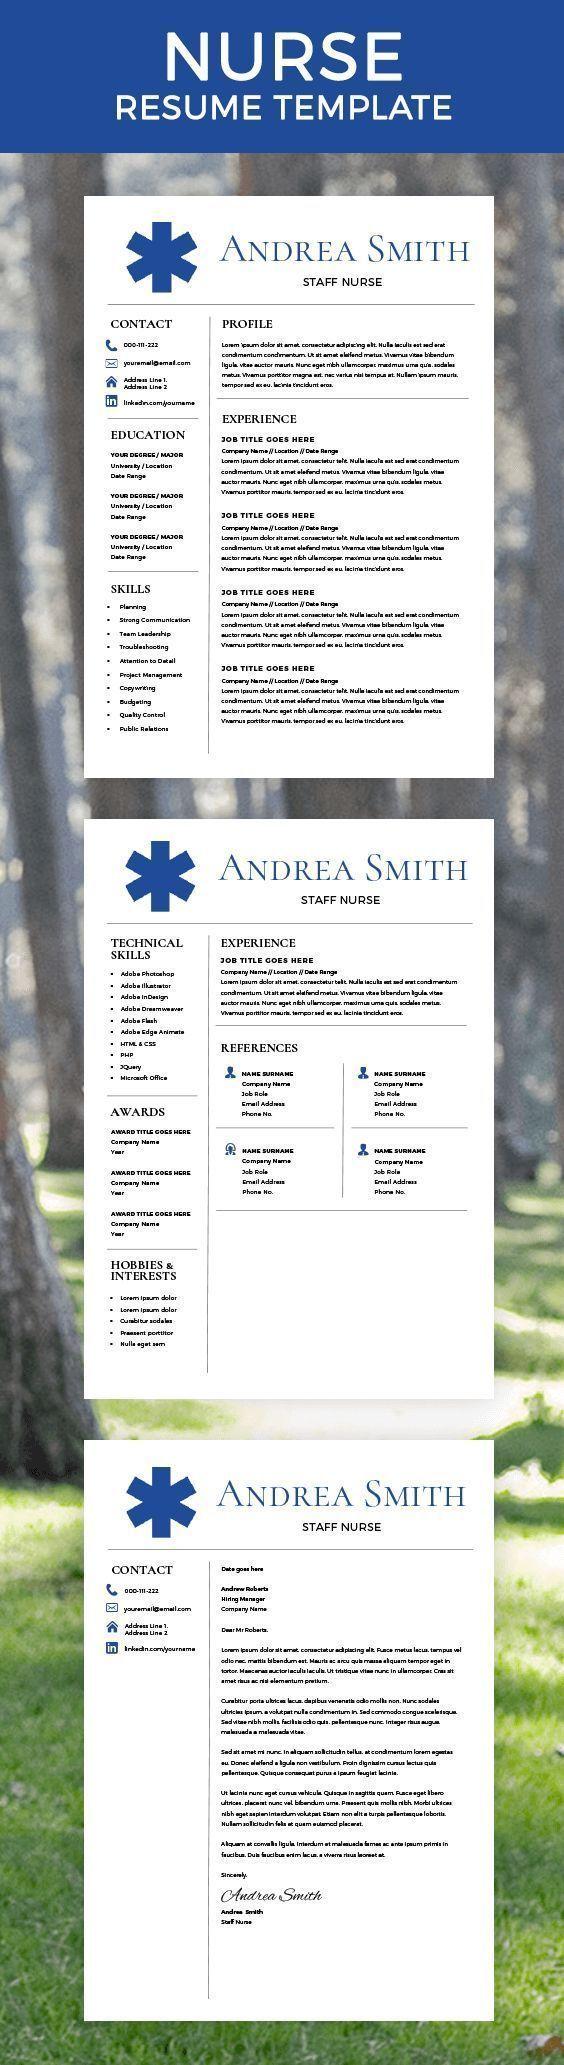 Resume Template For Nurses Free Nurse Resume Template  Nurse Staff  Top Resume Templates  Cv .